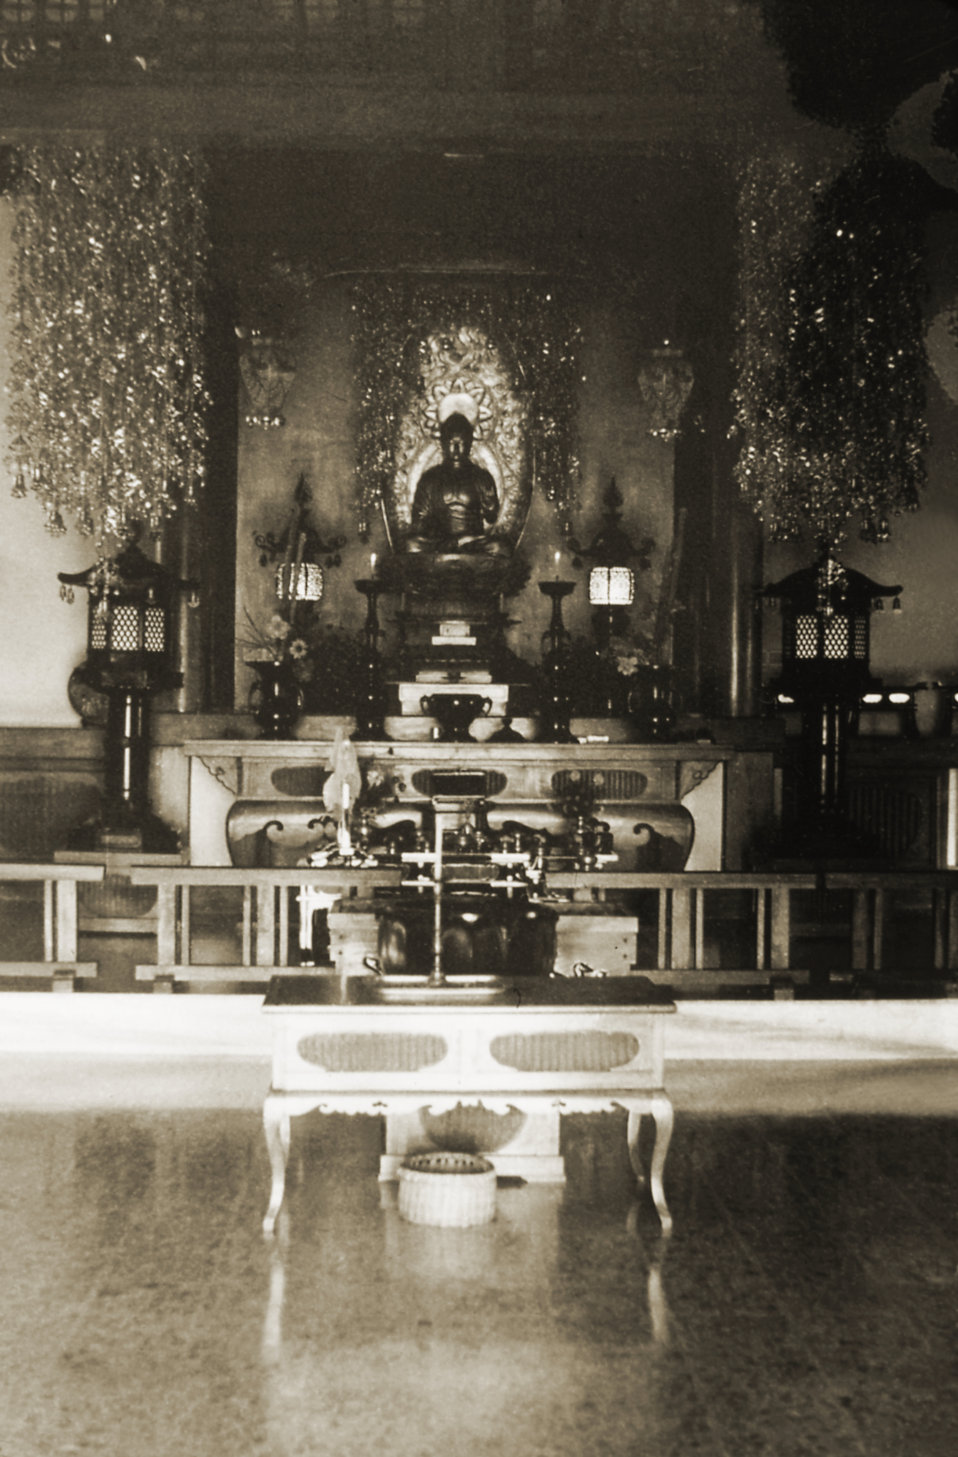 This image depicts the interior of a Japanese Buddhist temple, which was located in Bodh Gaya, a revered religious site located in the Gaya